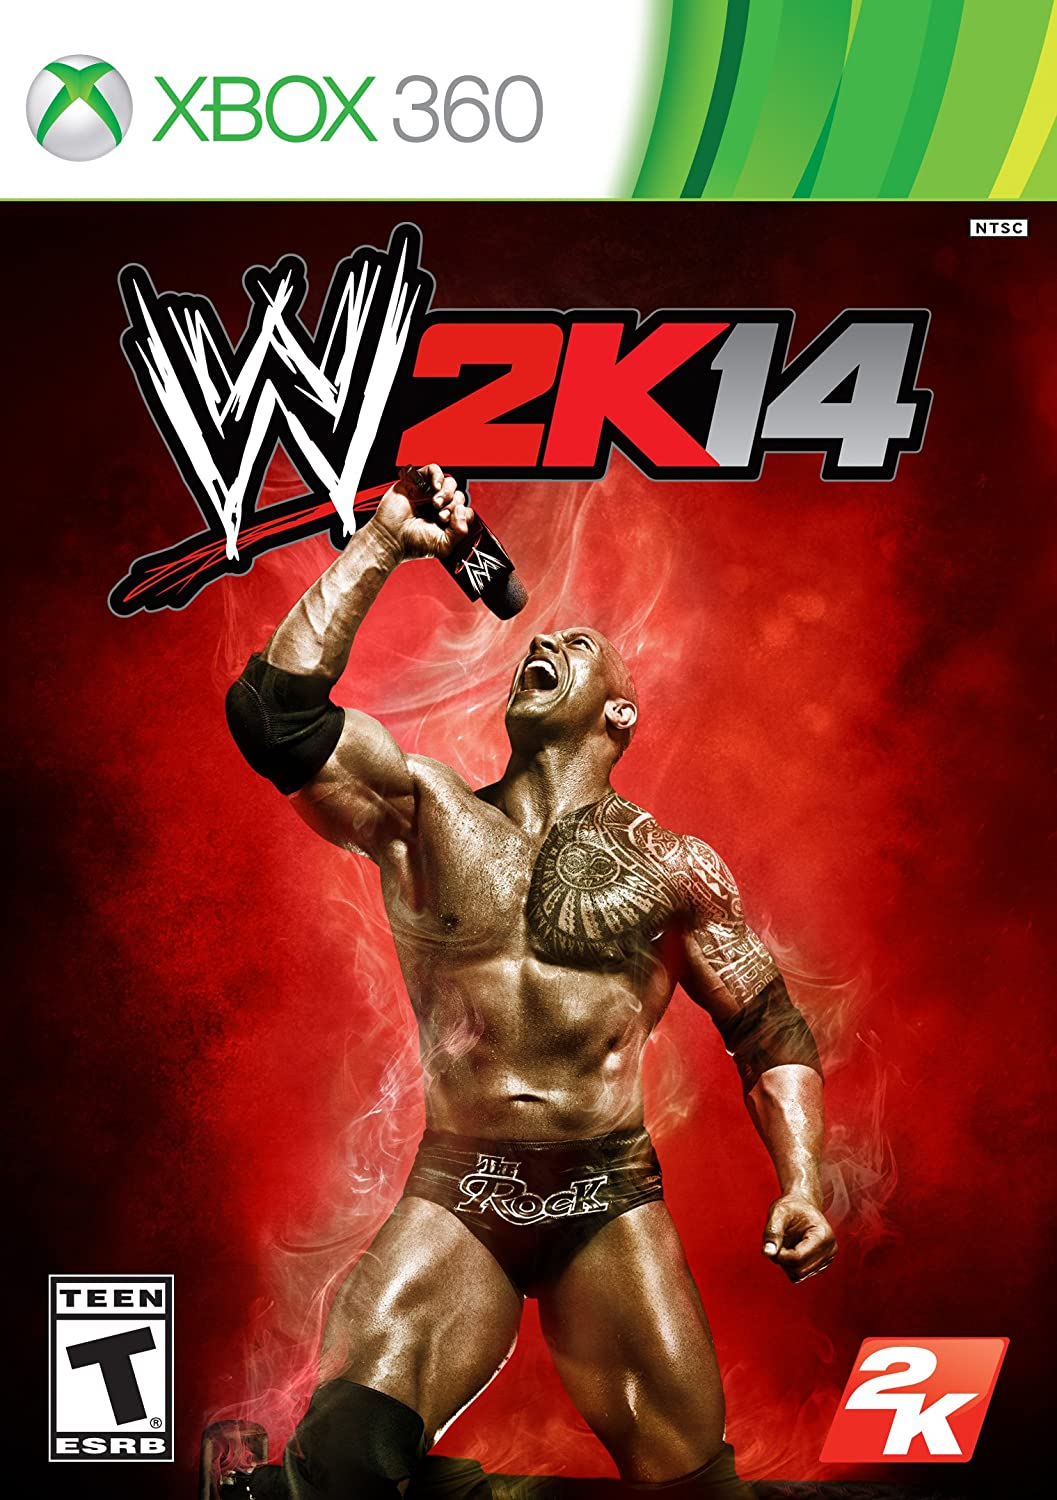 Xbox 360 Game Covers 2014 Xbox 360 Video Games